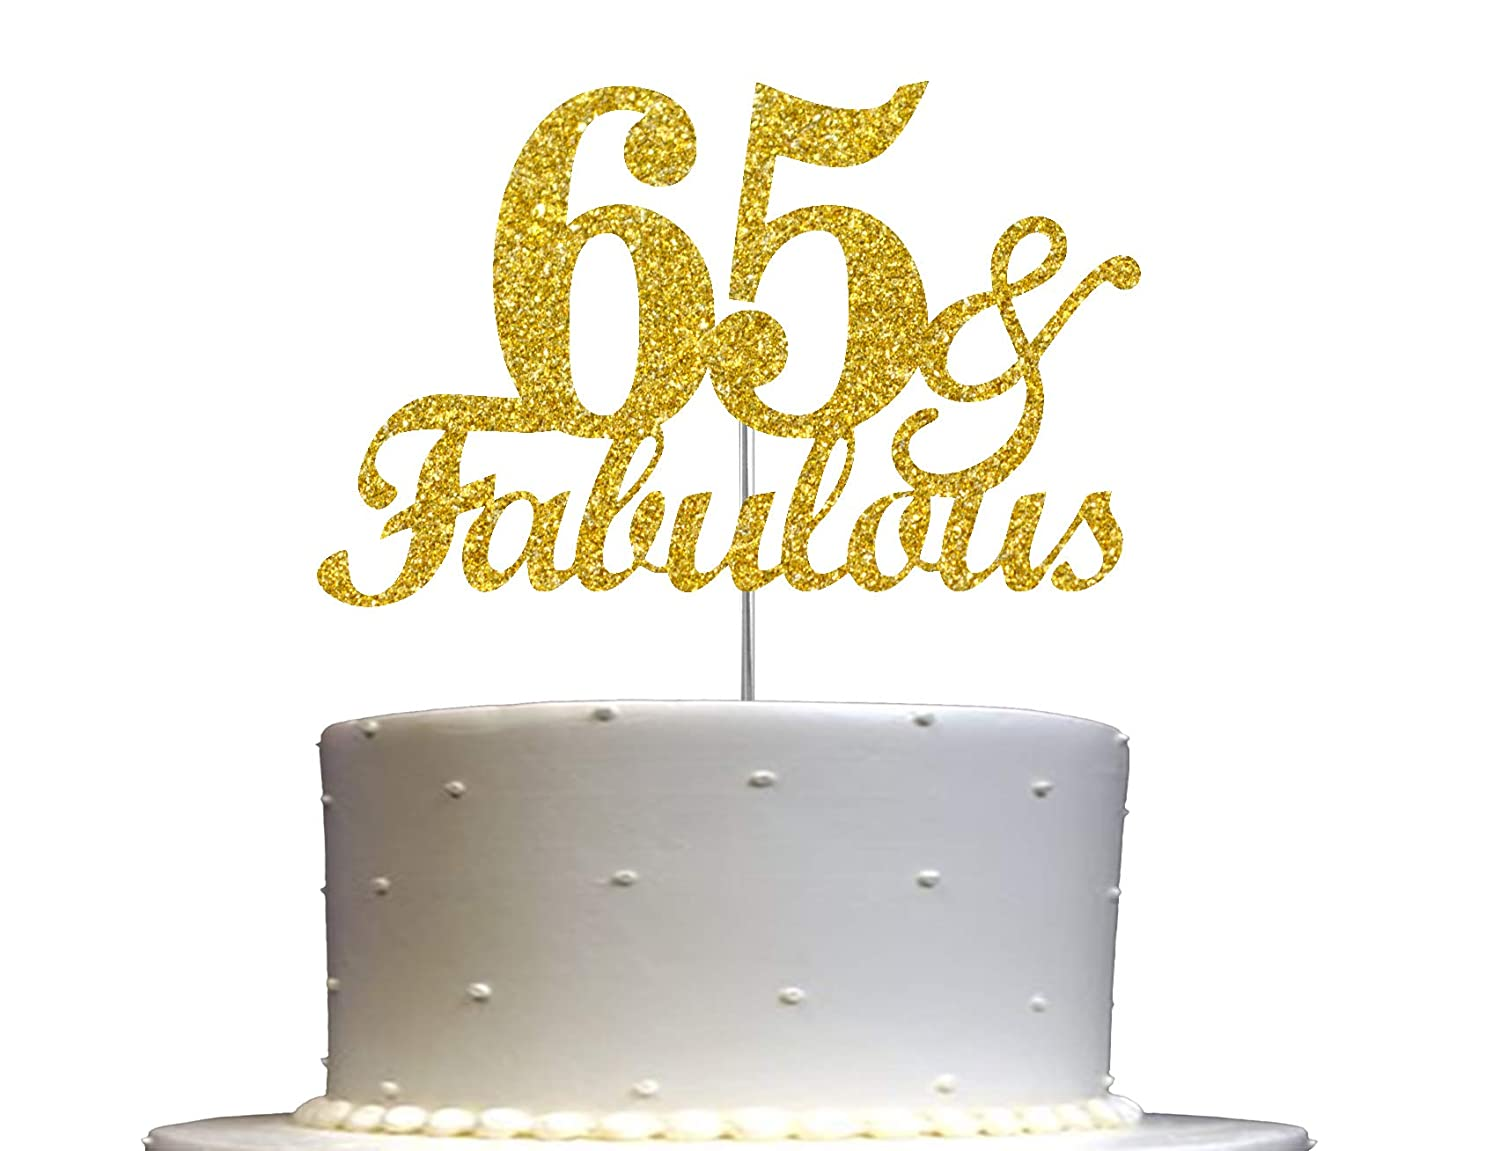 Fabulous & 65 Gold Glitter Cake Topper, 65th Birthday Party Decoration Ideas, Premium Quality, Sturdy Doubled Sided Glitter, Acrylic Stick. Made in USA